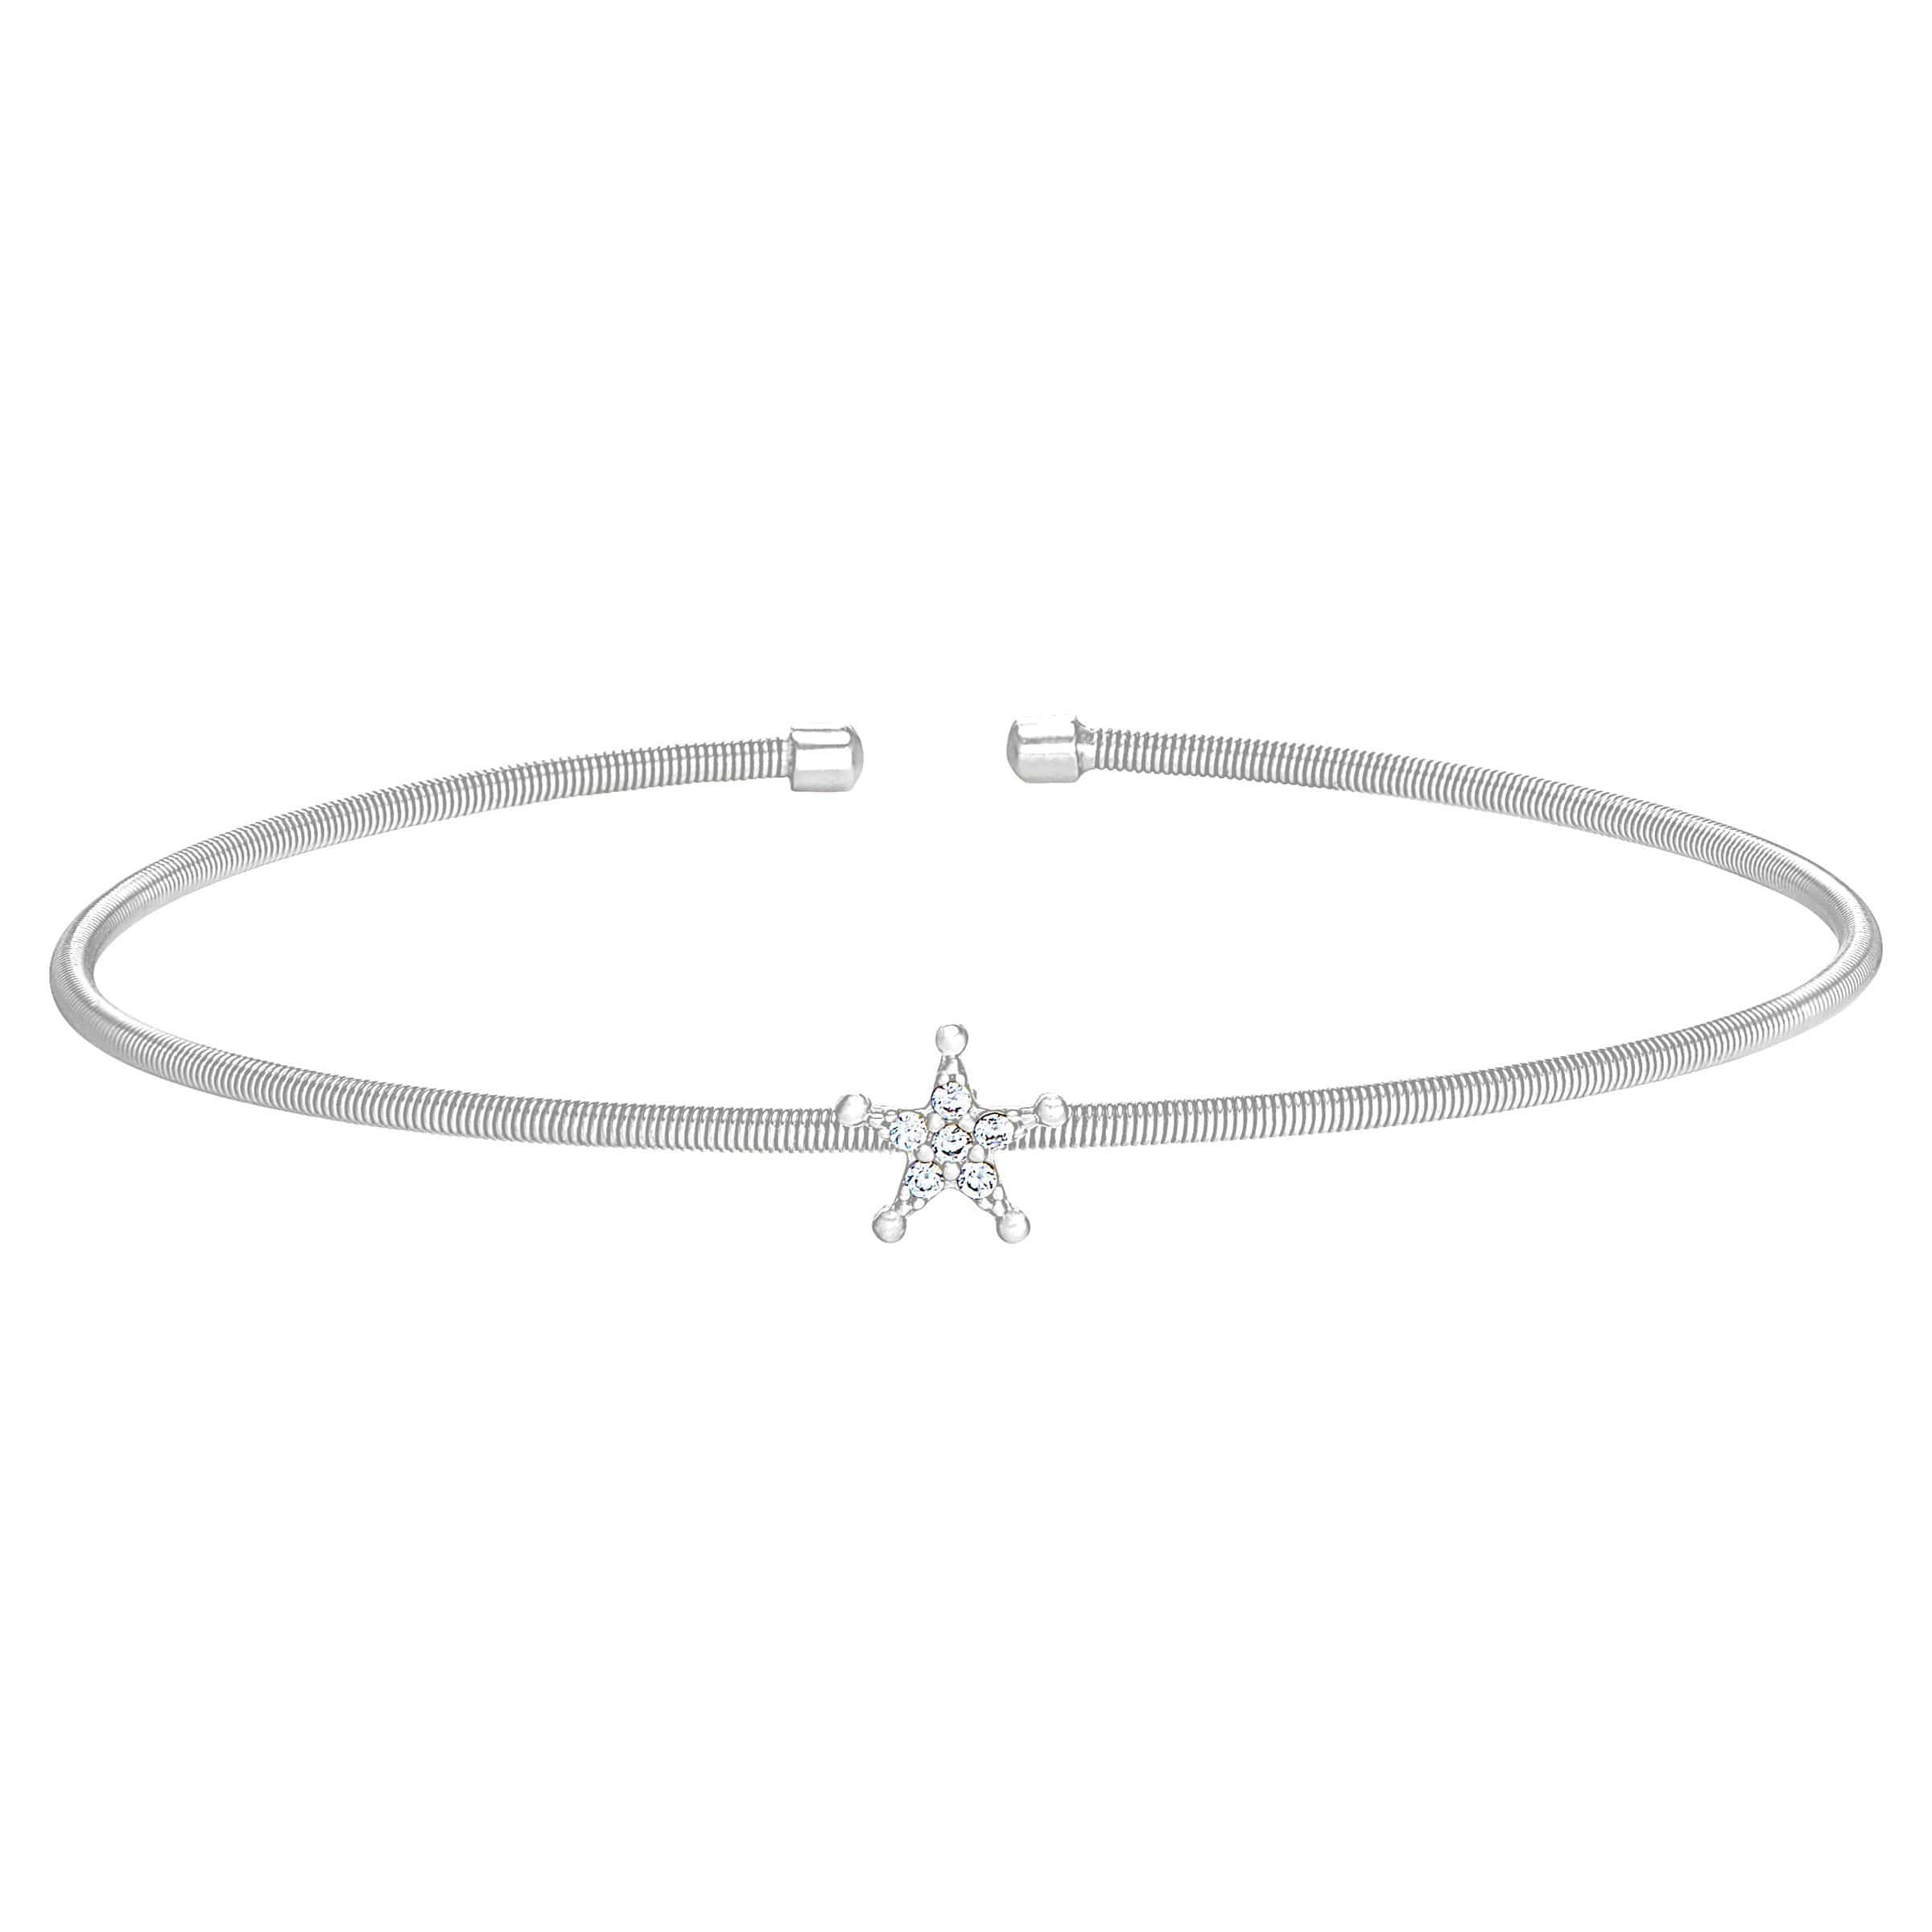 Rhodium Finish Sterling Silver Cable Cuff Star Bracelet - LL7083B-RH-Kelly Waters-Renee Taylor Gallery